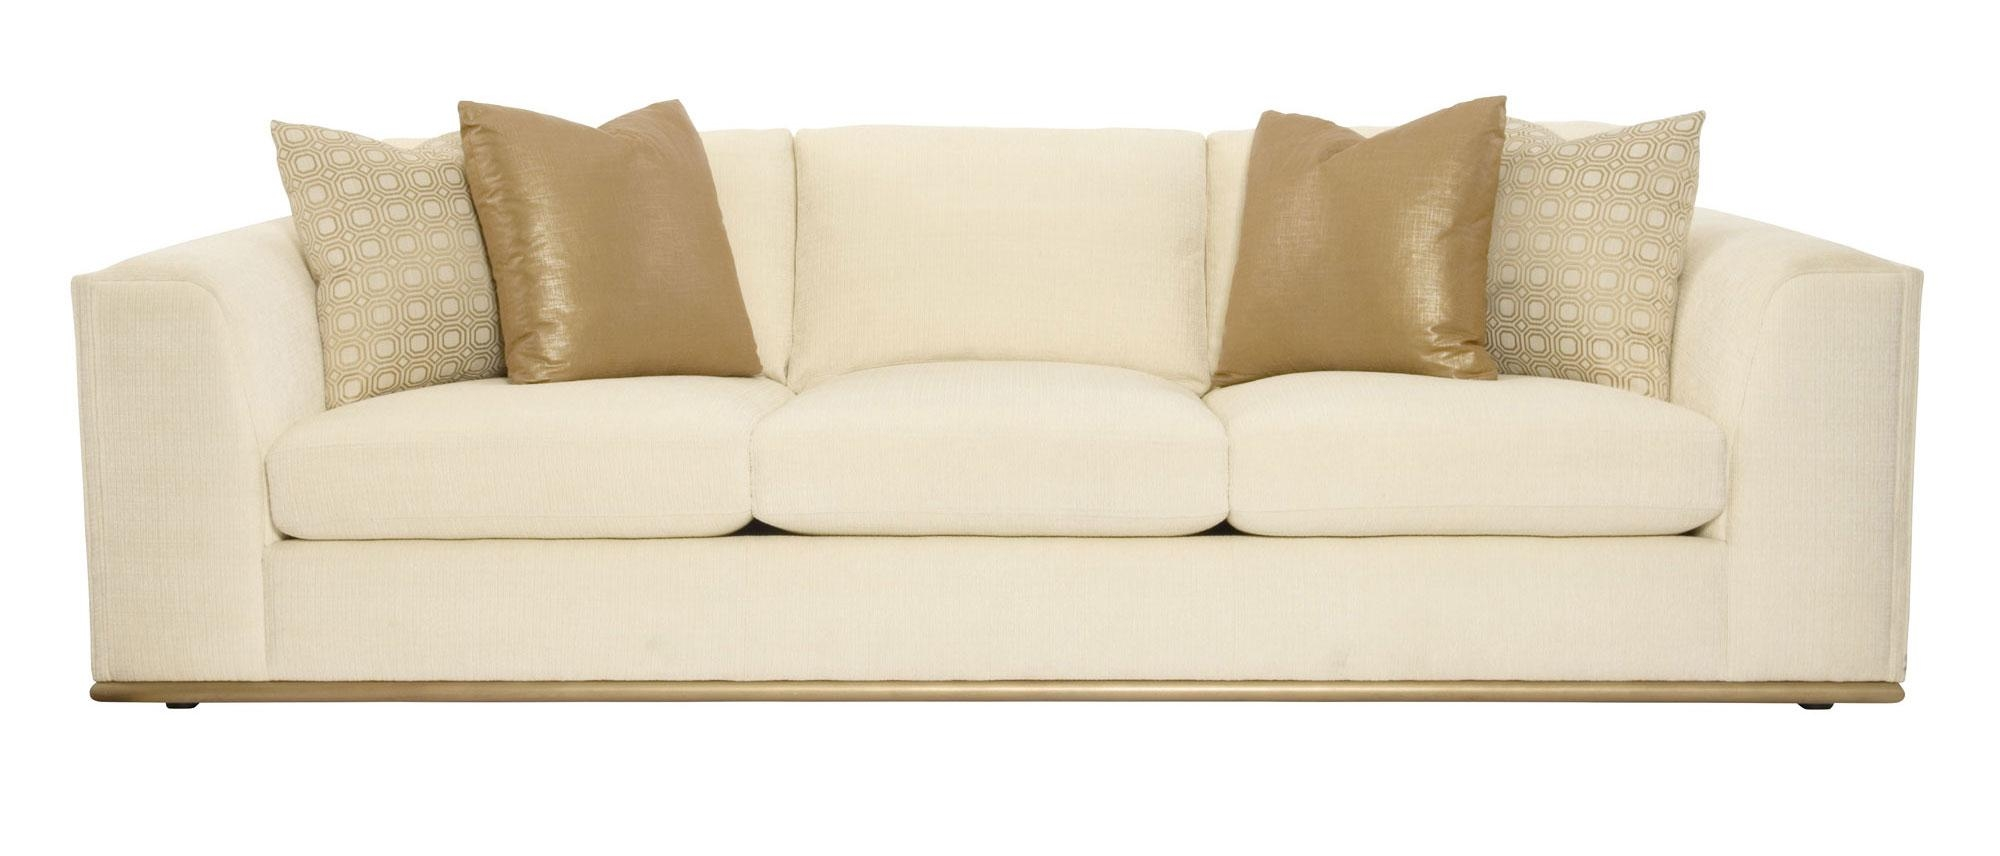 Sofas Center : Sofa Bernhardt Fearsome Leather Image Ideas Sofas Regarding Bernhardt Sofas (View 8 of 20)